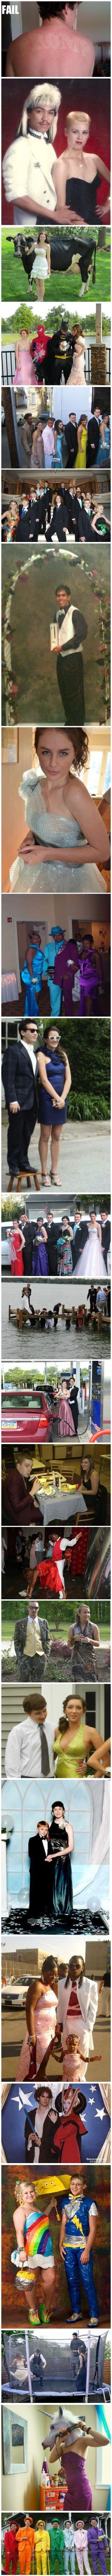 prom gone wrong. Why?